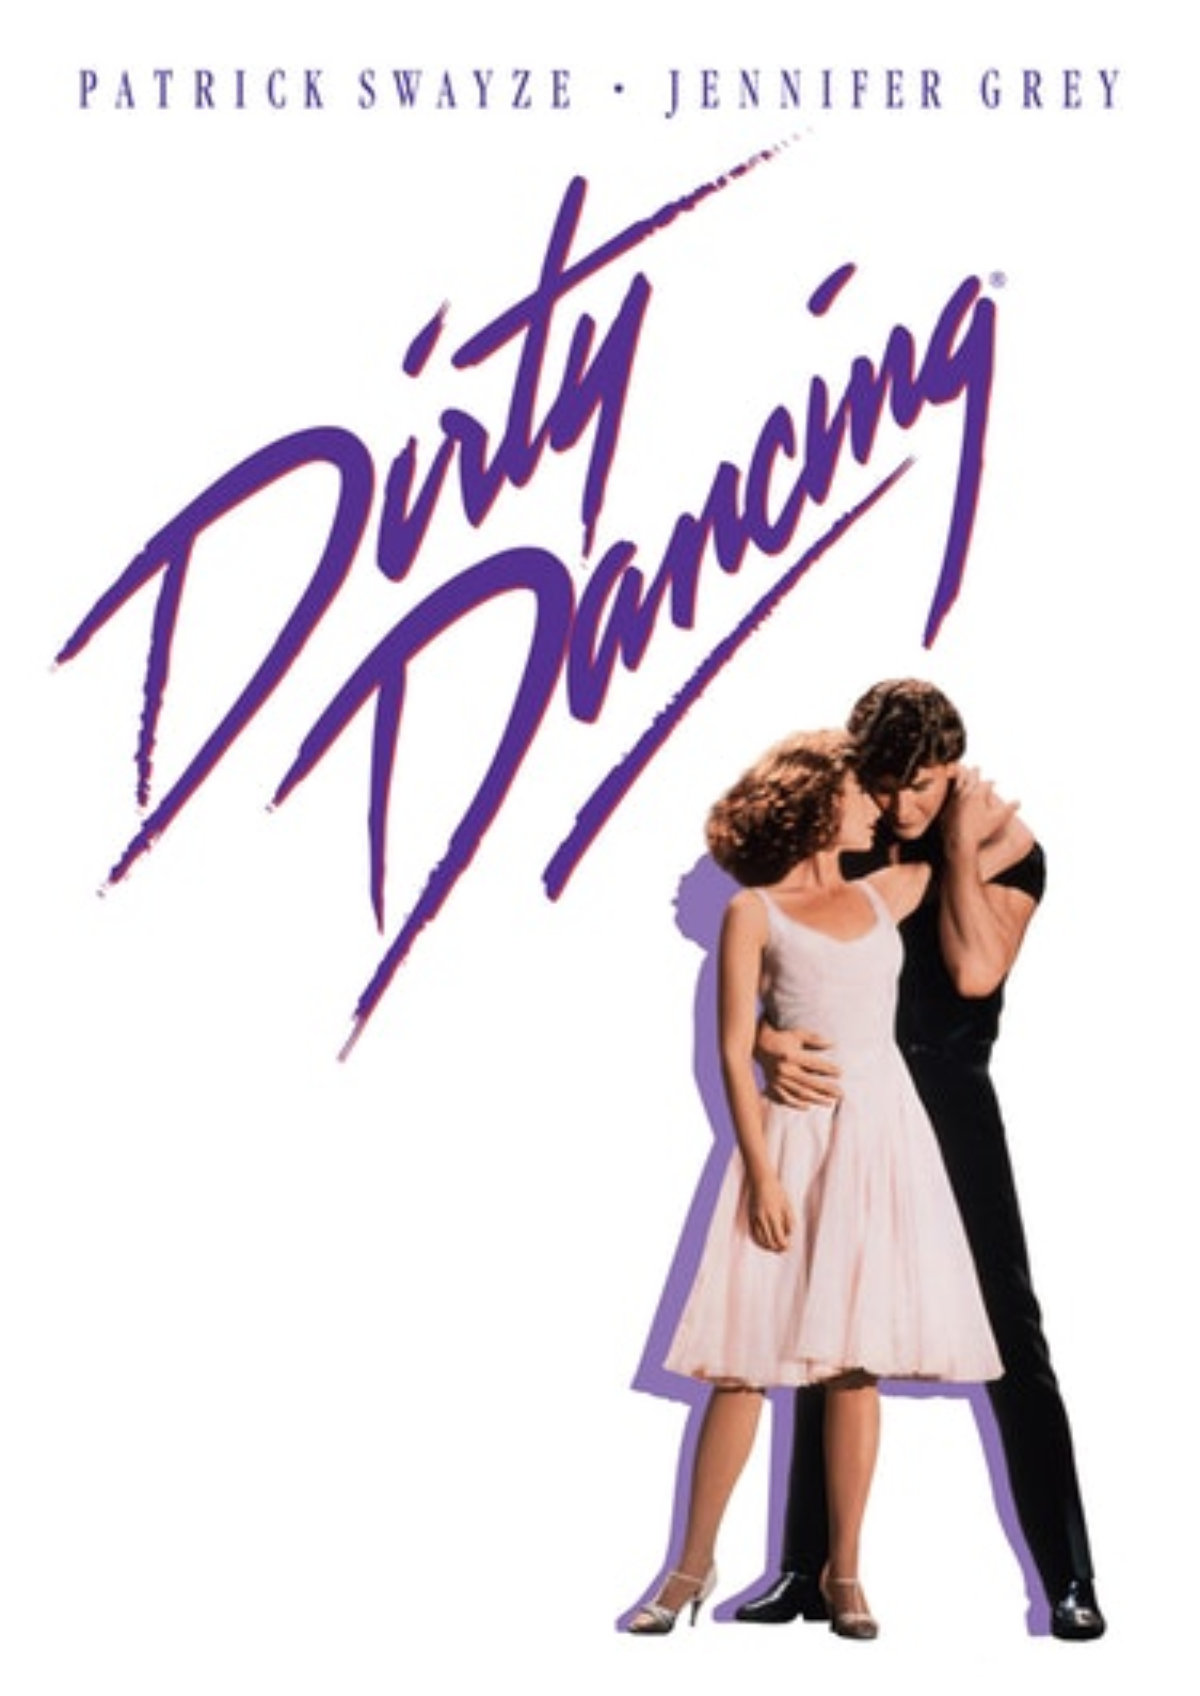 'Dirty Dancing' movie poster